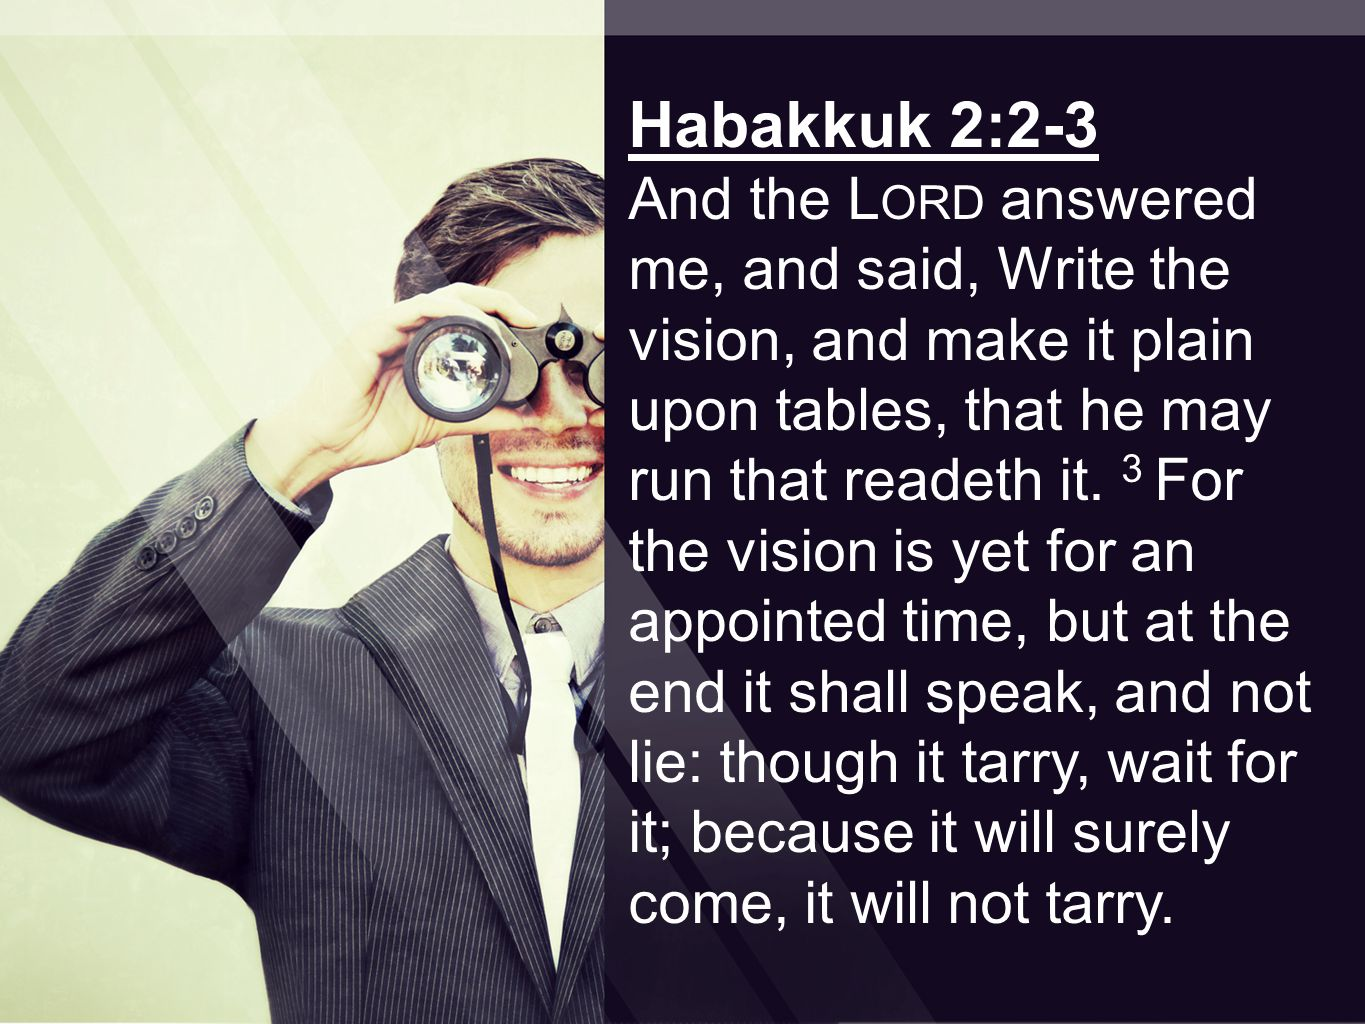 Habakkuk 2:2-3 And the L ORD answered me, and said, Write the vision, and make it plain upon tables, that he may run that readeth it.